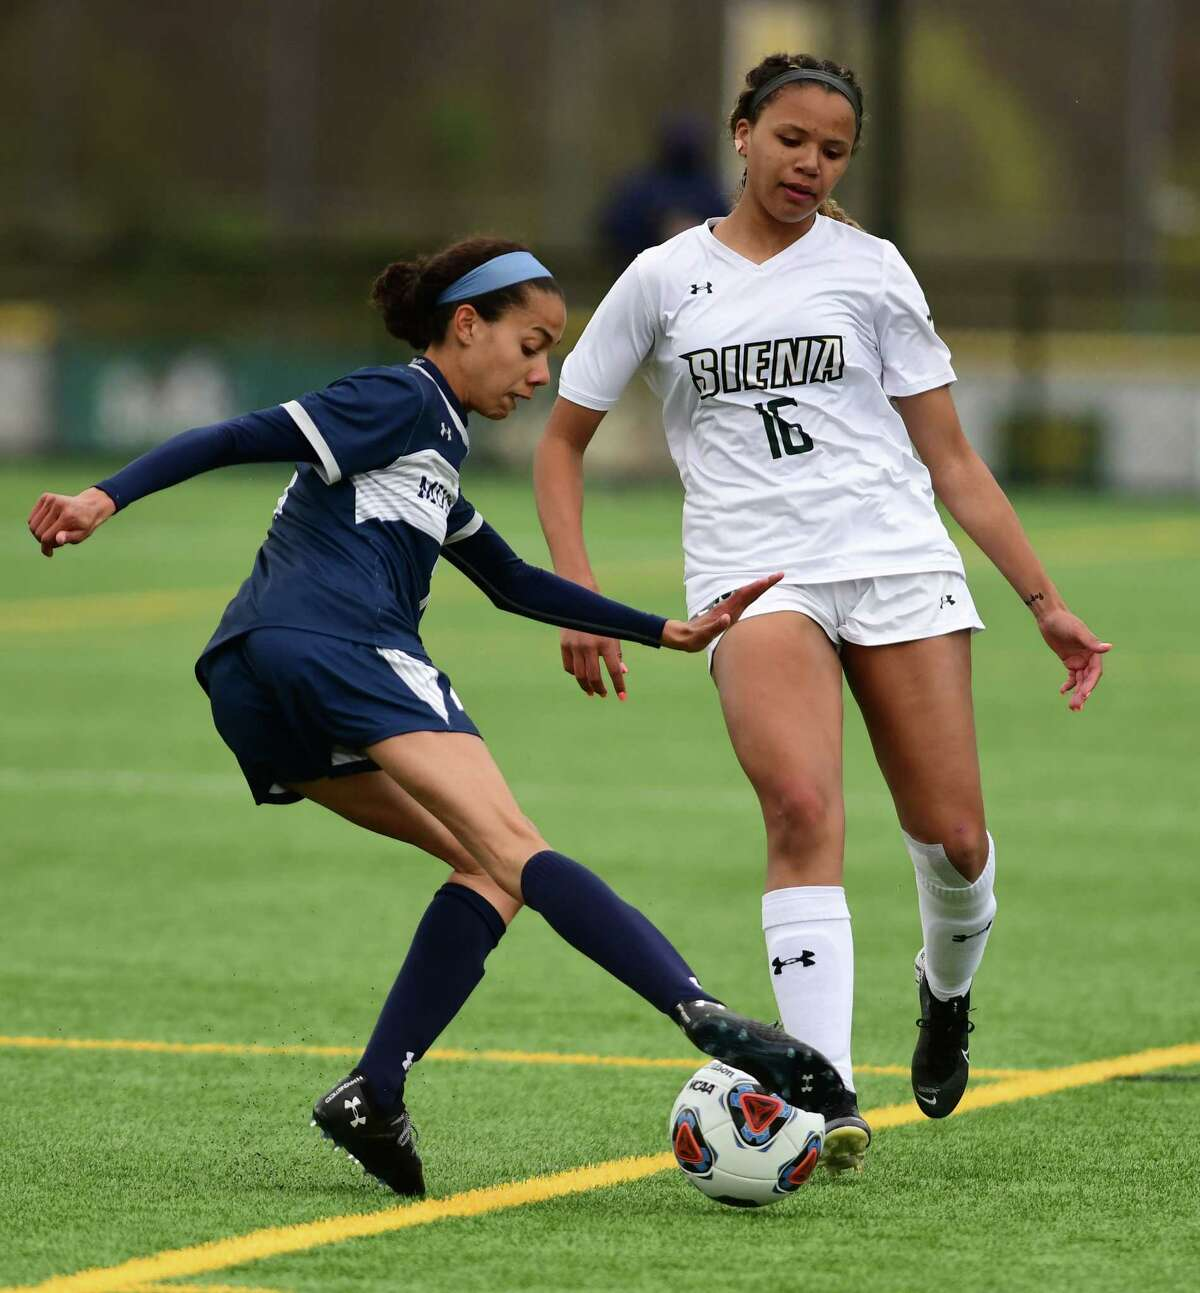 Siena's Annie Bagnall, right, tries to get the ball from Monmouth's Sarina Jones during a soccer game for the MAAC championship on Thursday, April 15, 2021 in Loudonville, N.Y. The Saints meet Arizona State next. (Lori Van Buren/Times Union)